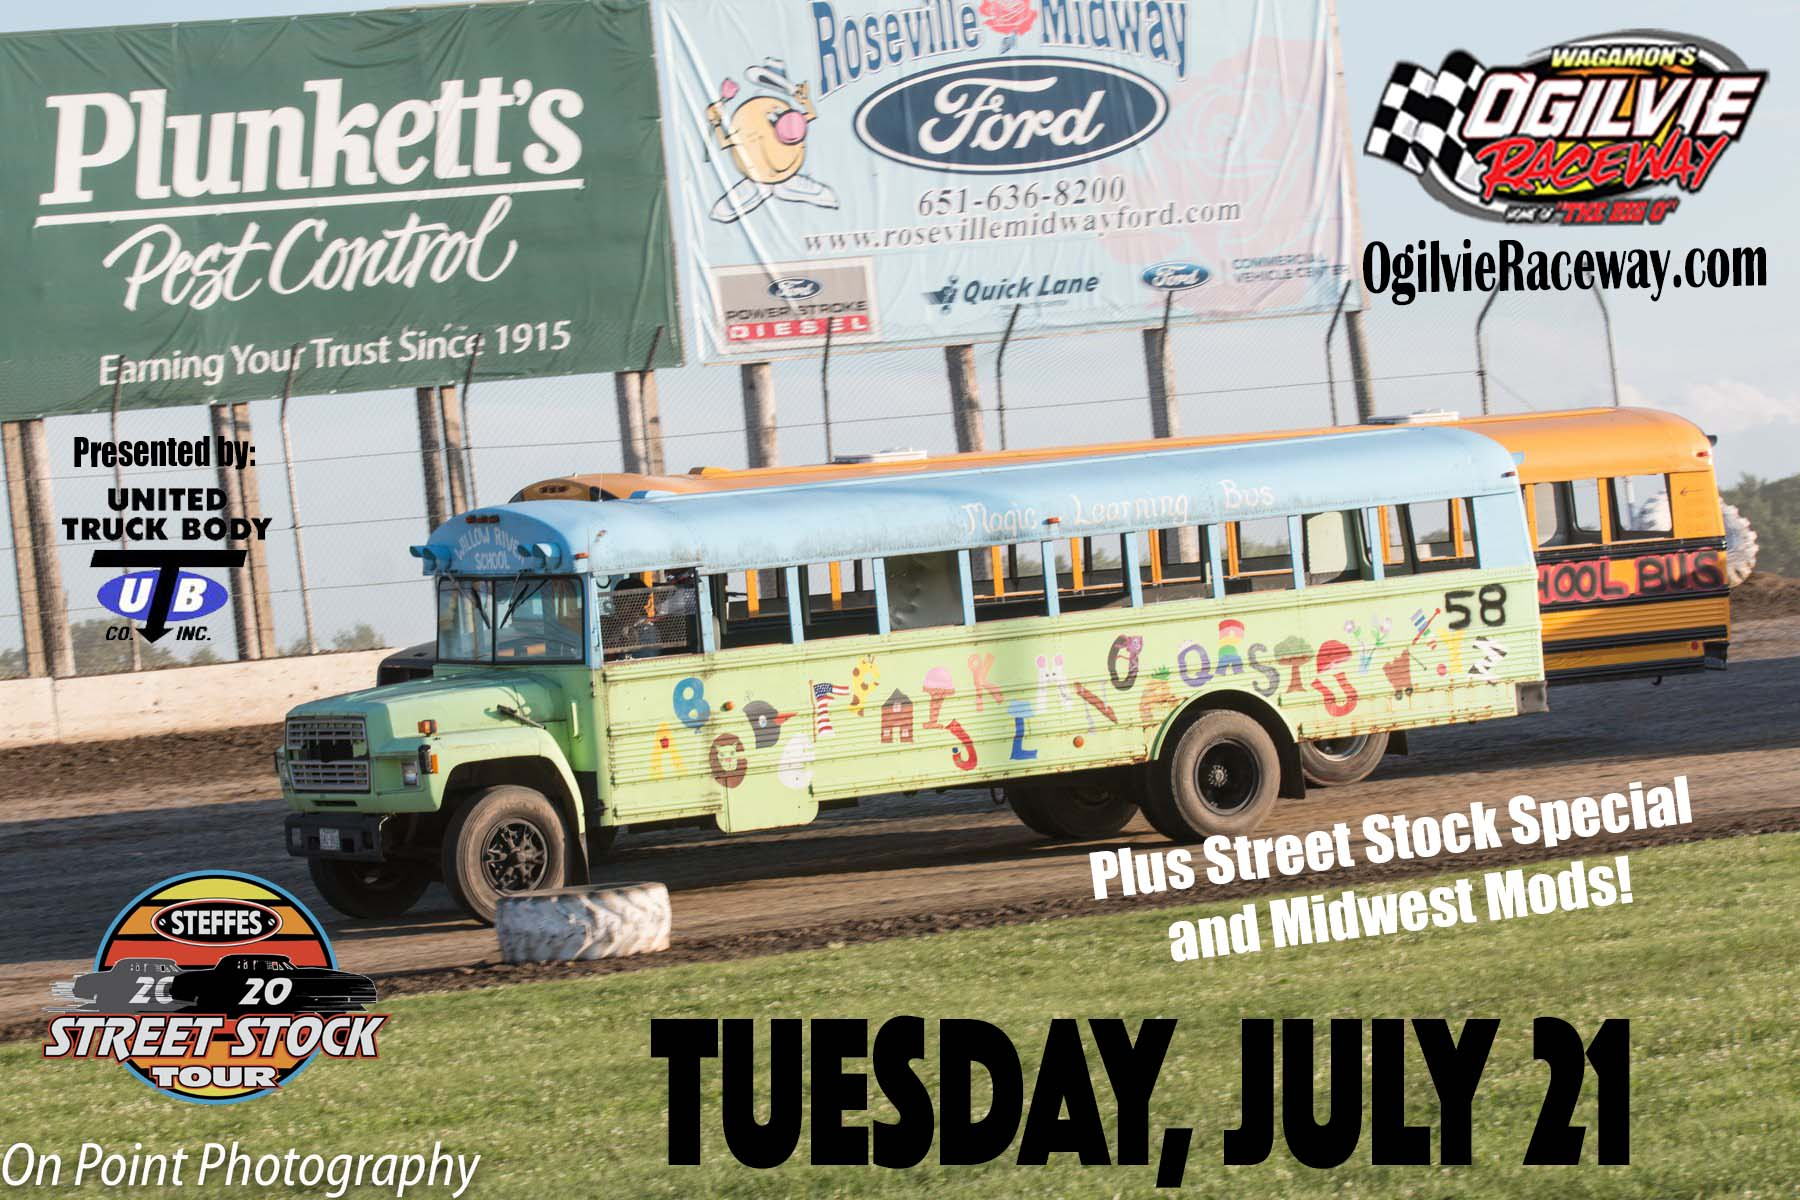 TUESDAY, JULY 21st – School Bus Races plus Street Stock Tour and Midwest Mods